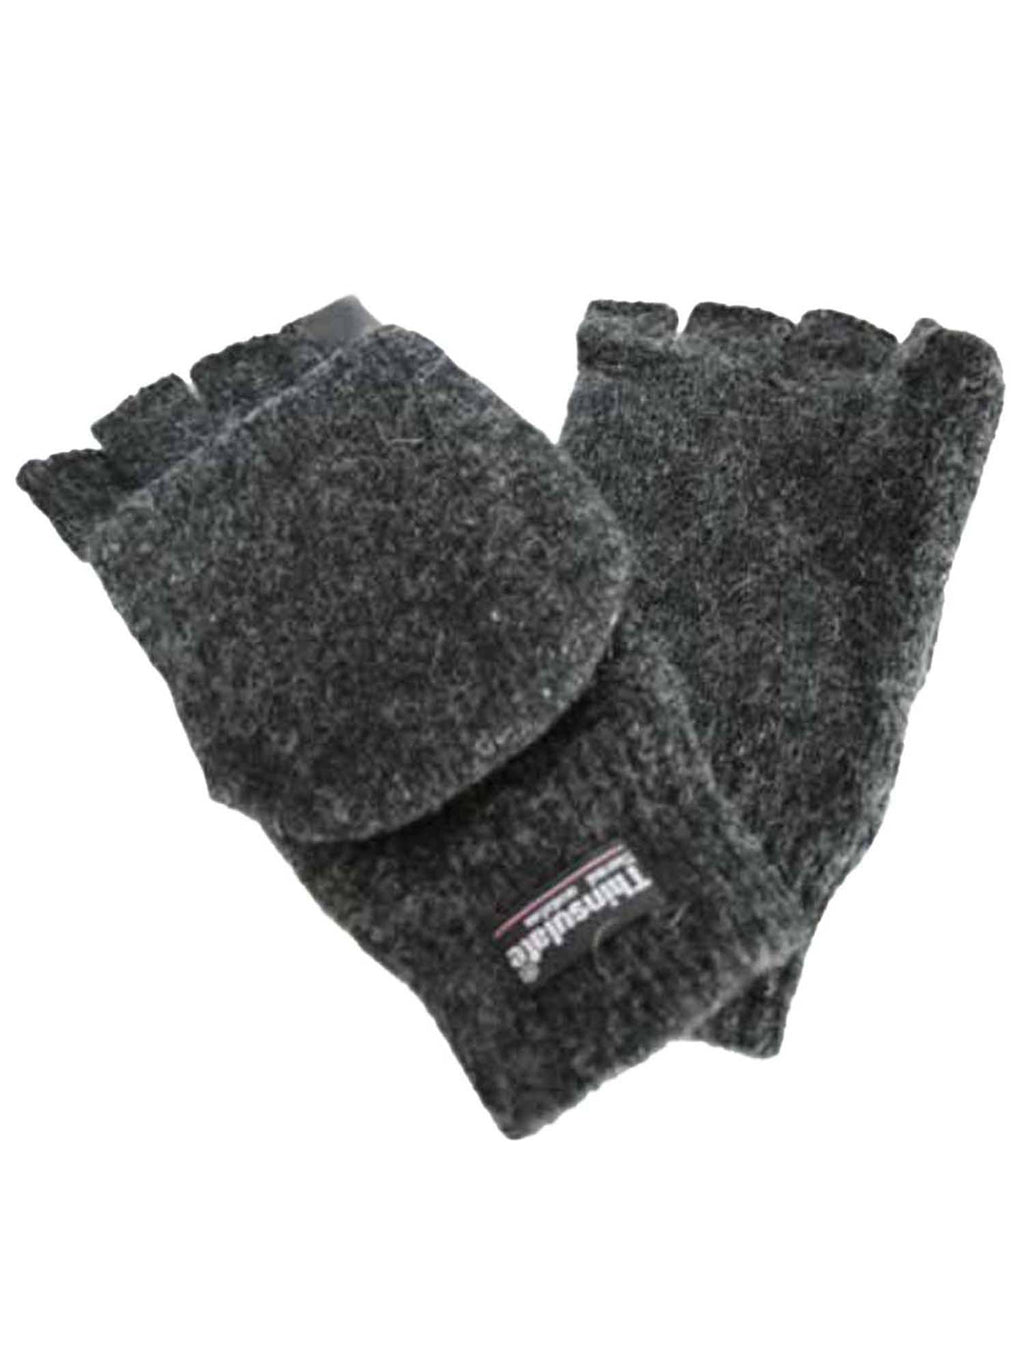 Mens Rag Wool Fingerless Convertible Gloves